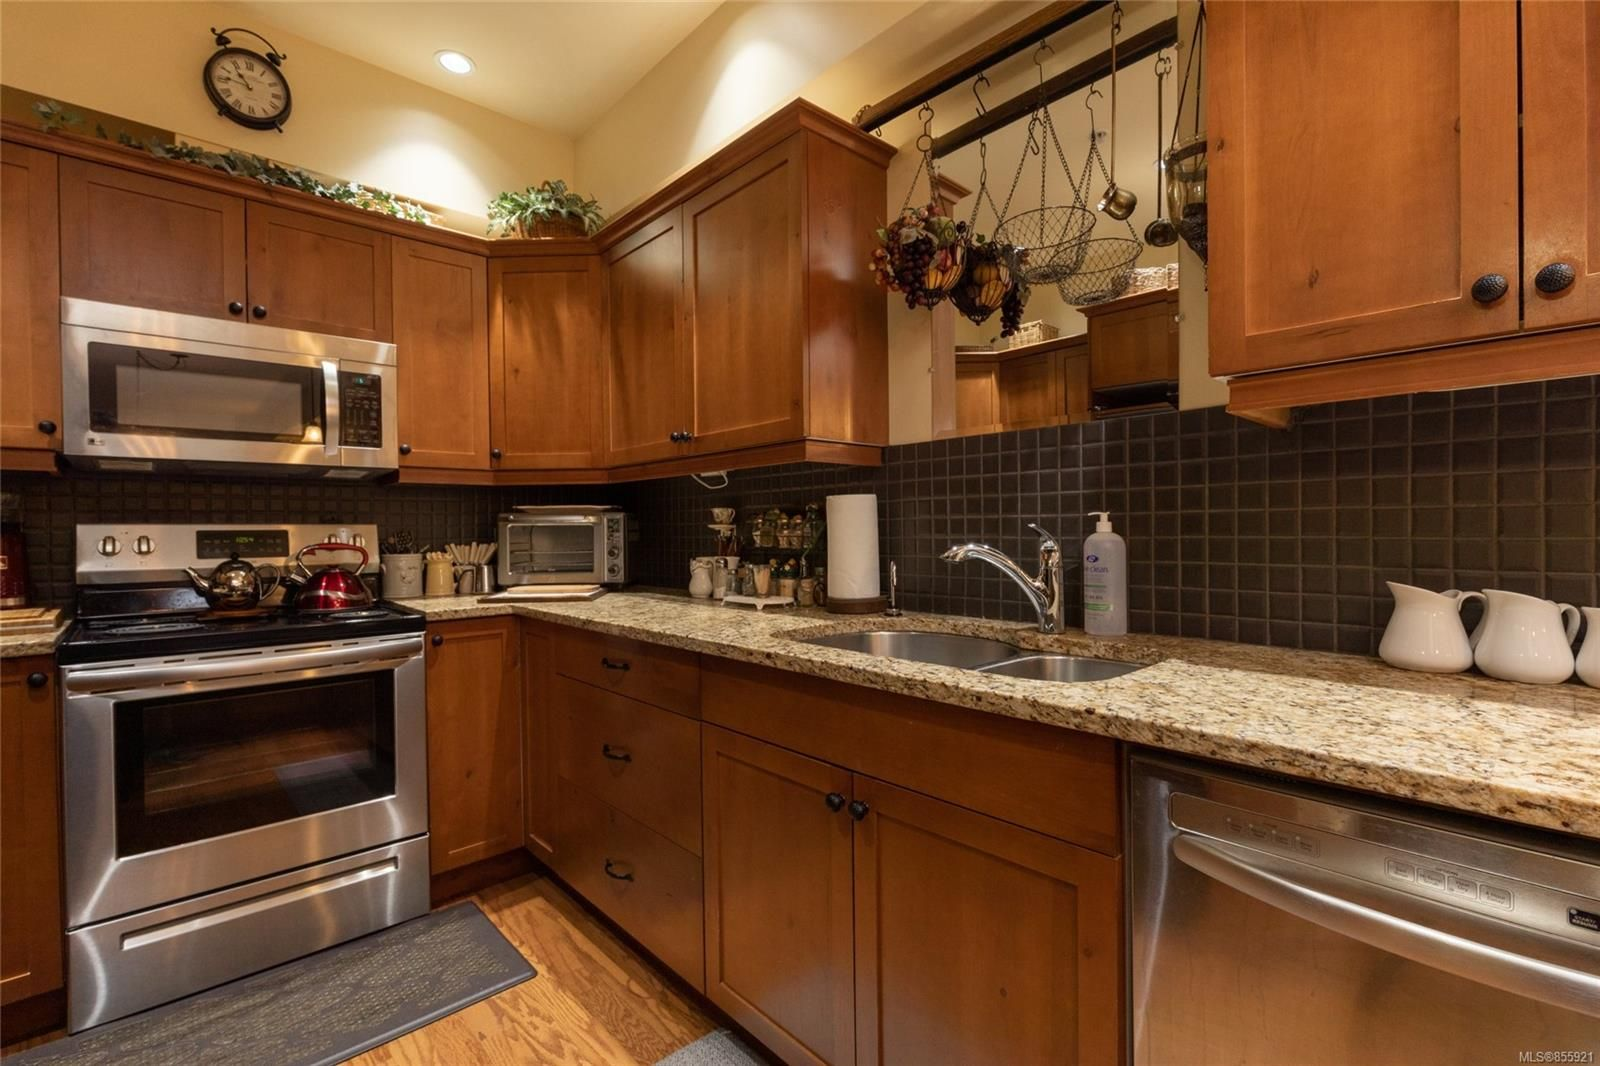 Photo 9: Photos: 206 1244 4TH Ave in : Du Ladysmith Row/Townhouse for sale (Duncan)  : MLS®# 855921